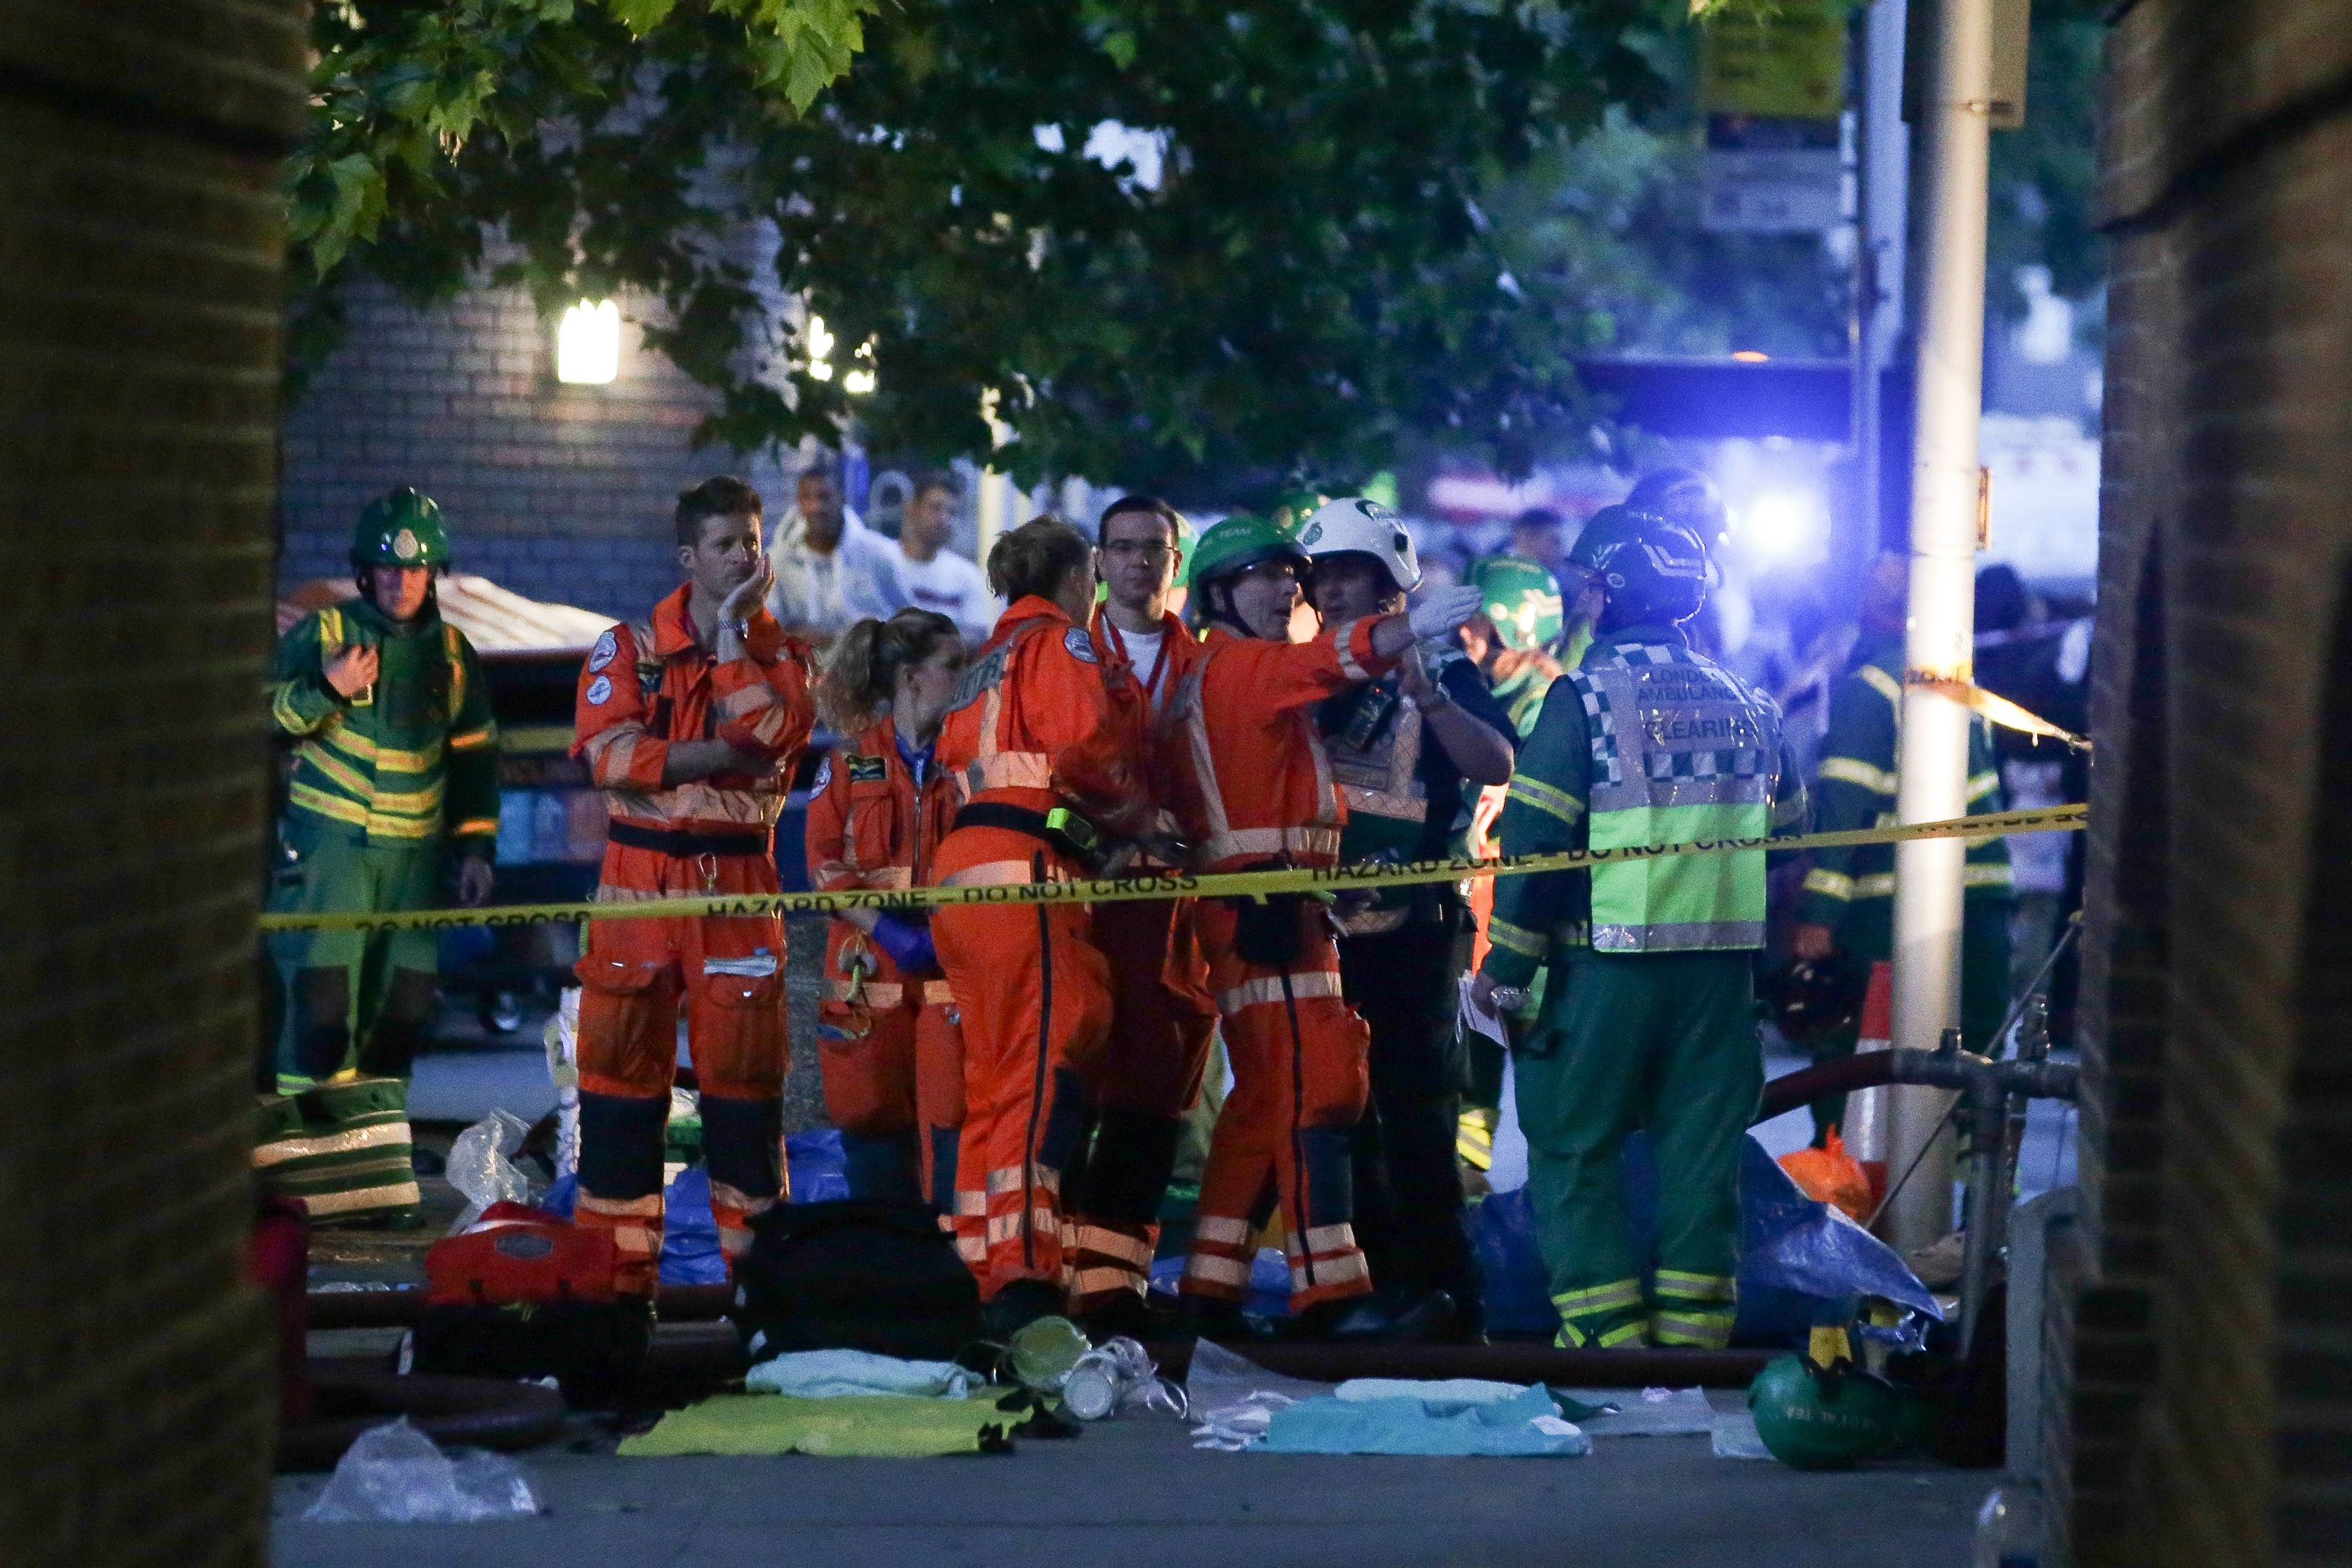 Paramedics working at the scene ned to a huge fire at Grenfell Tower, in west London on June 14, 2017. (DANIEL LEAL-OLIVAS/AFP/Getty Images)